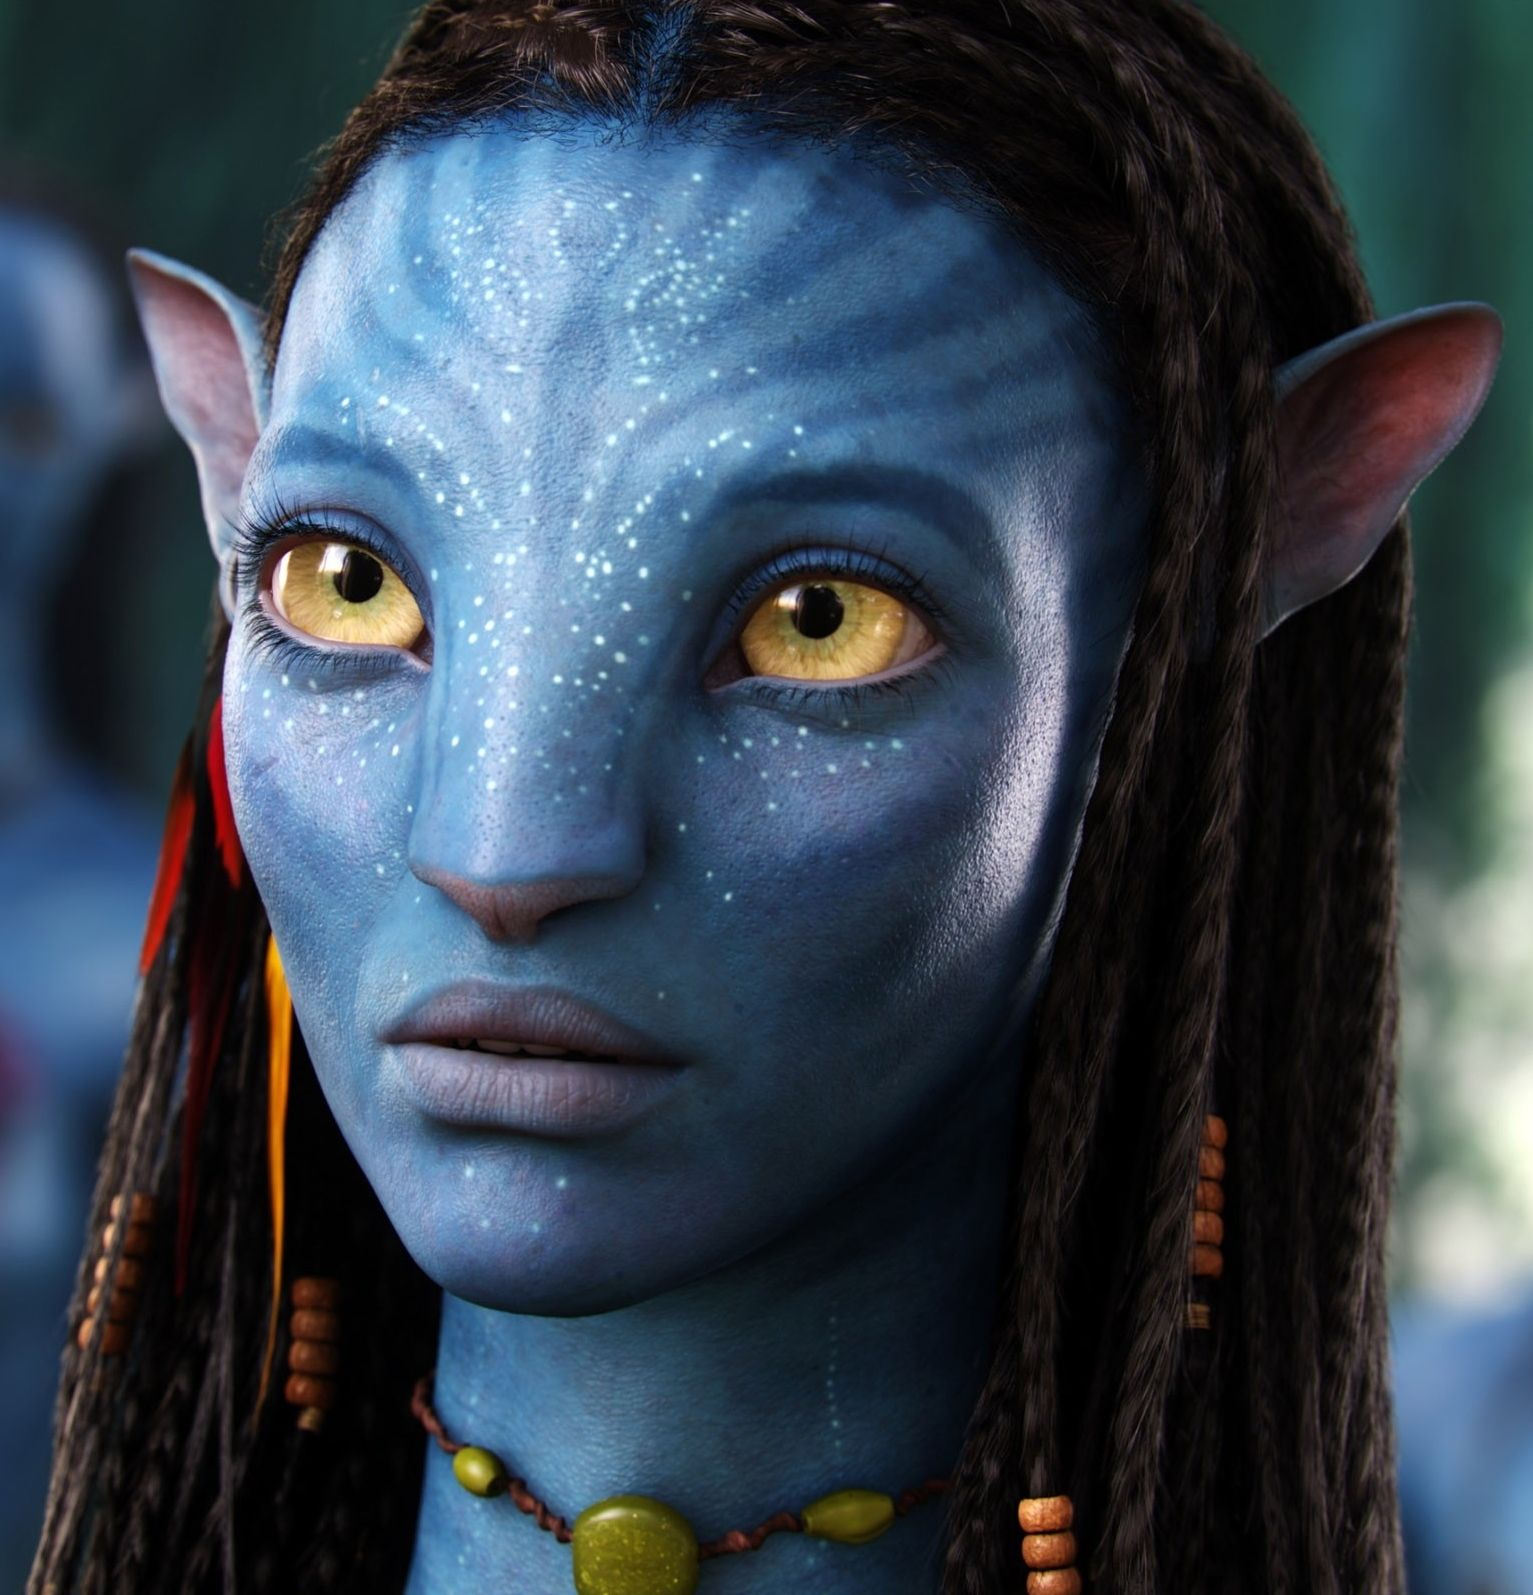 Avatar Film: Neytiri(Avatar) Played By Zoe Saldana